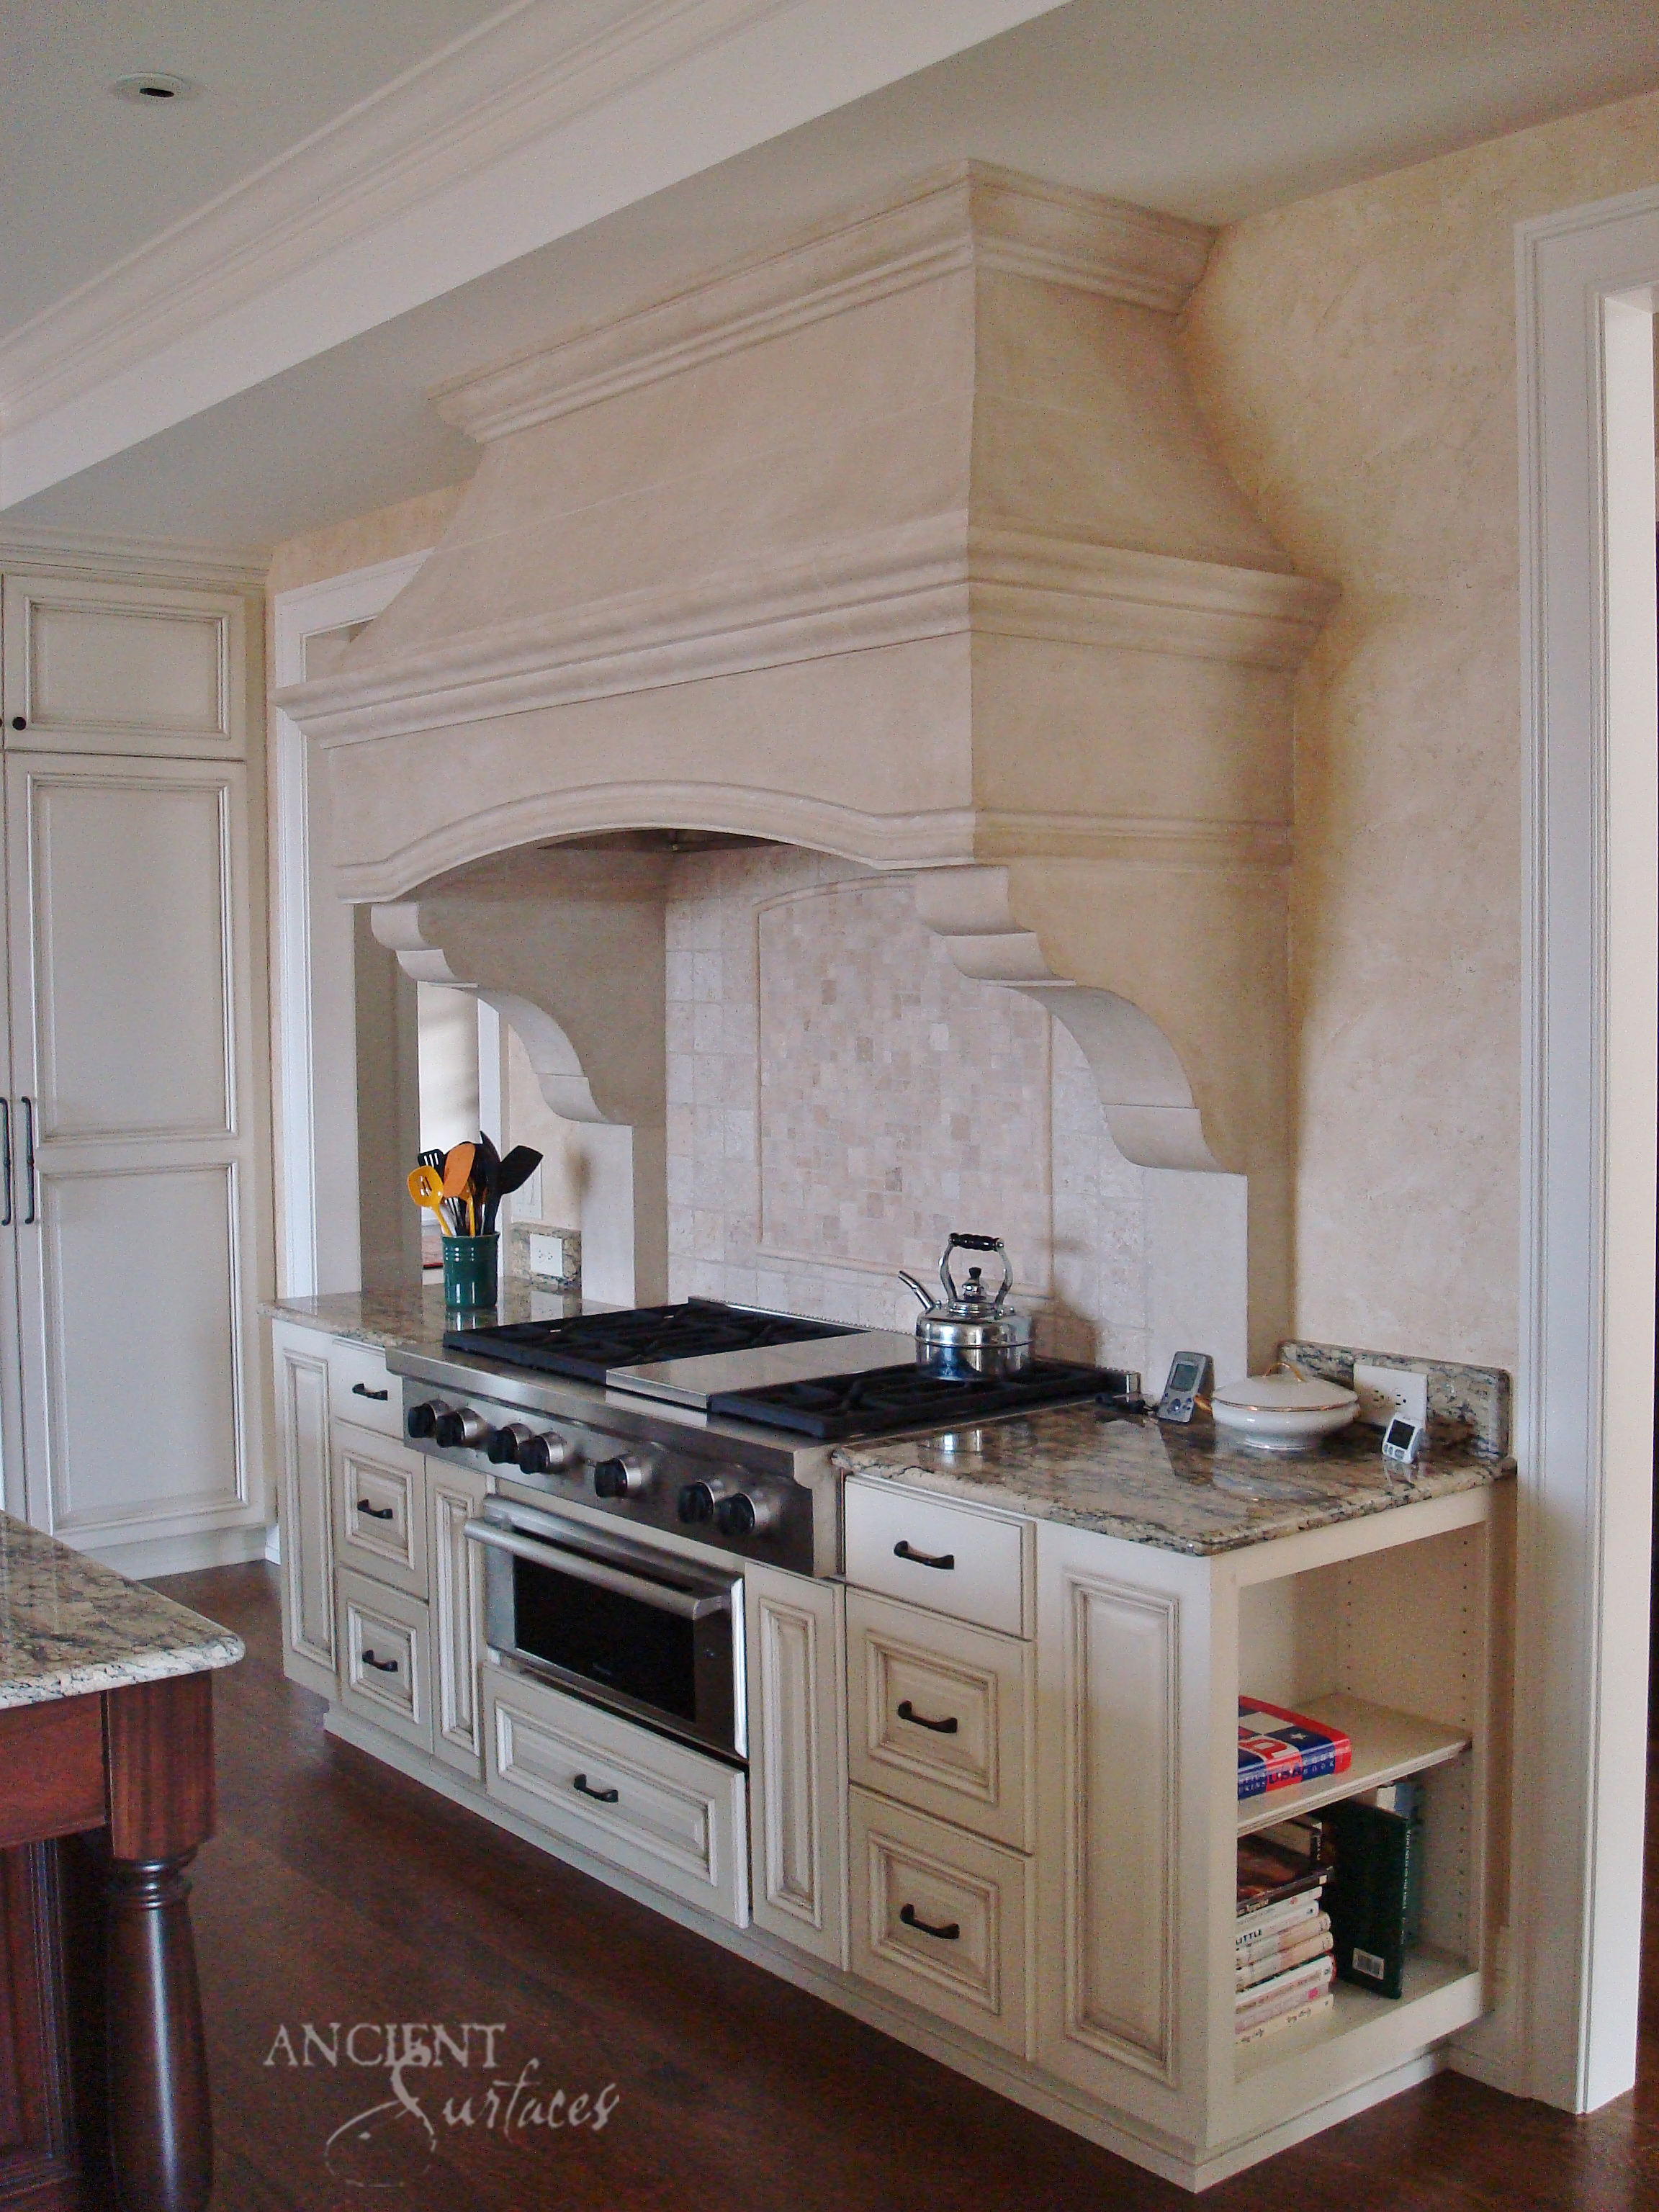 The French Kitchen Campagne Style One Style To Rule Them